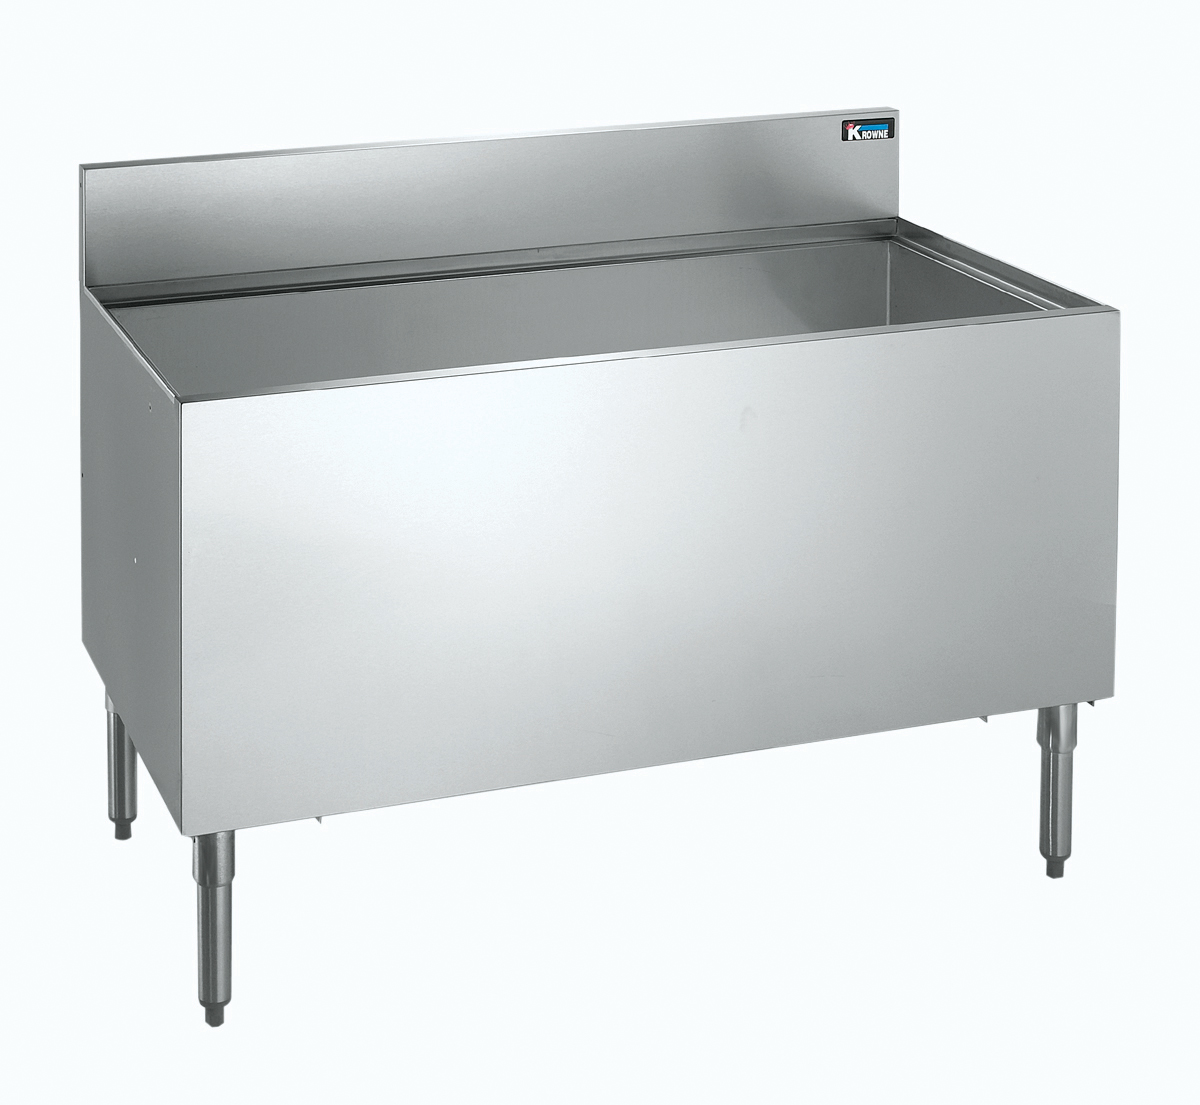 Krowne Metal KR18-CB48 underbar beer bin, ice cooled